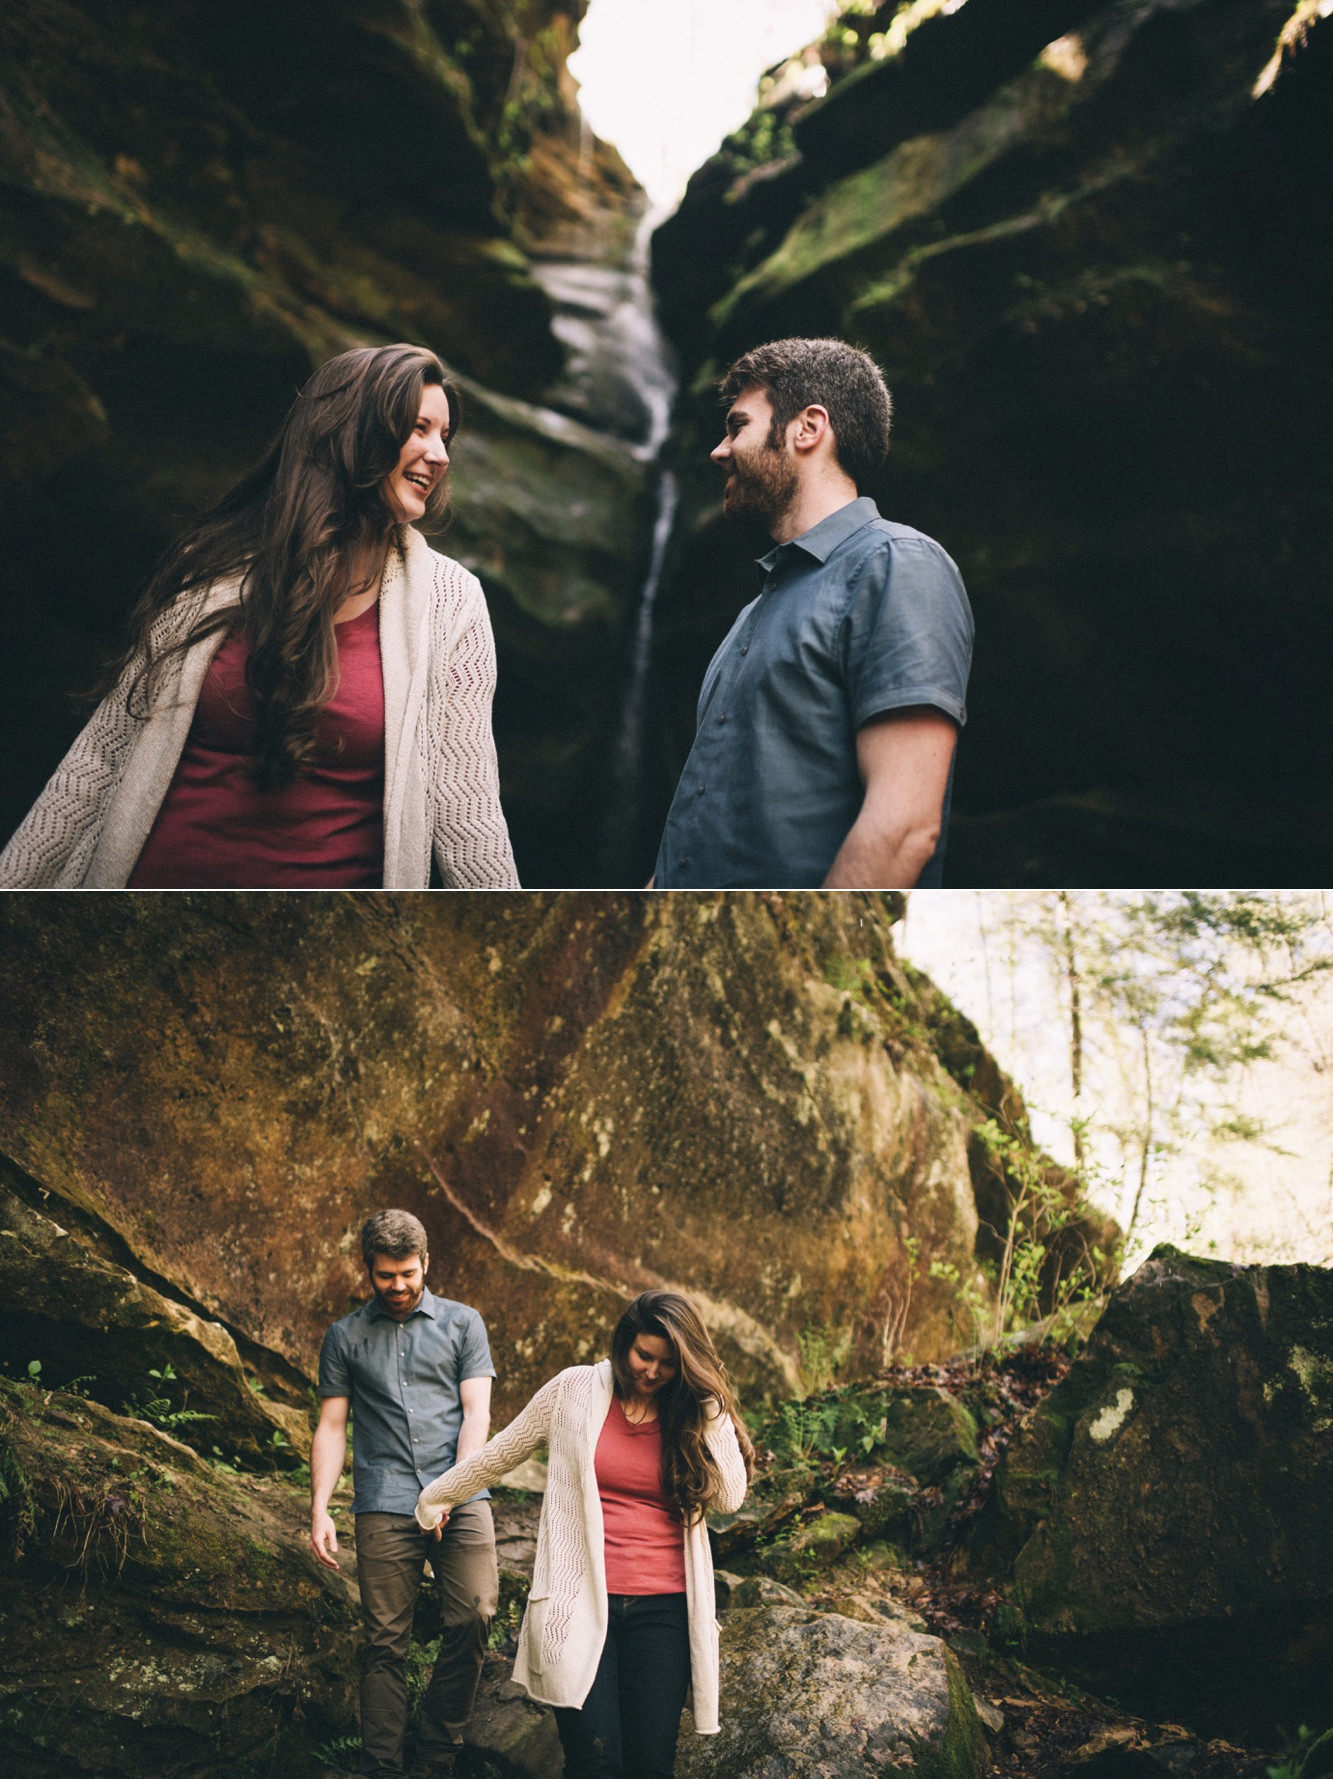 Hiking-Engagement-Session-By-Louisville-Kentucky-Wedding-Photographer-Sarah-Katherine-Davis